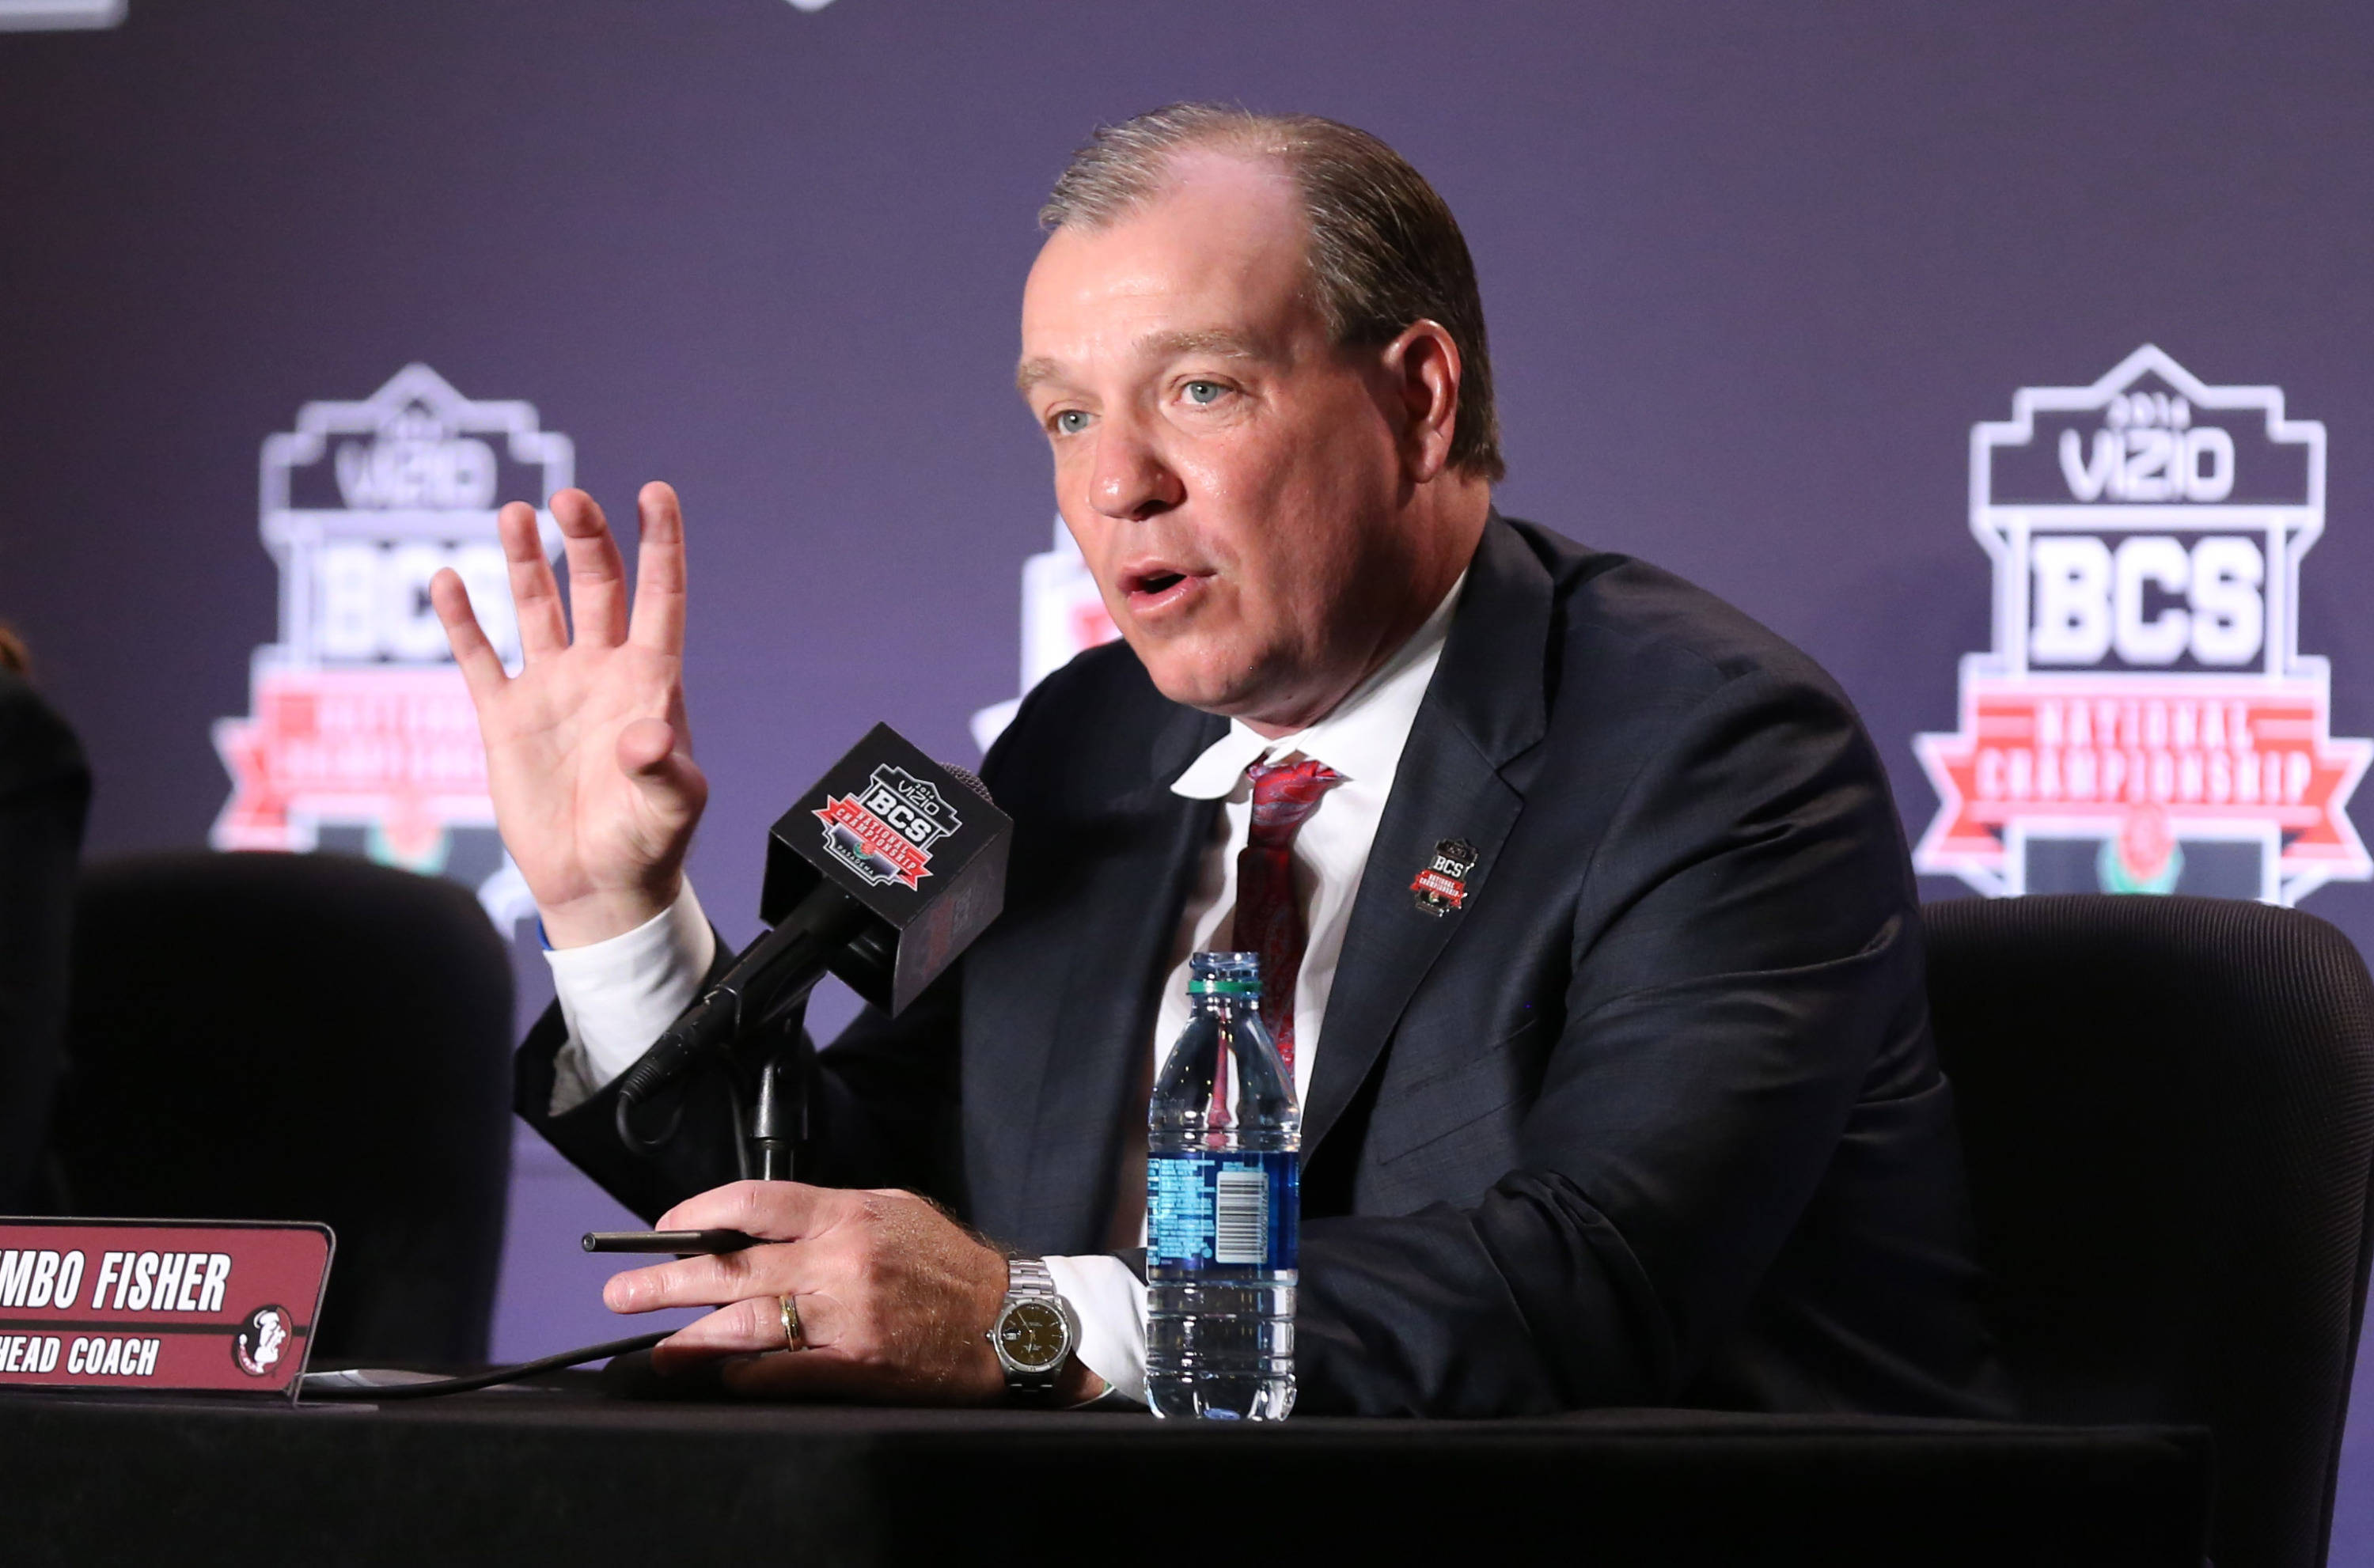 Jan 5, 2014; Los Angeles, CA, USA; Florida State Seminoles head coach Jimbo Fisher answers questions during a press conference at Newport Beach Marriott. Mandatory Credit: Matthew Emmons-USA TODAY Sports